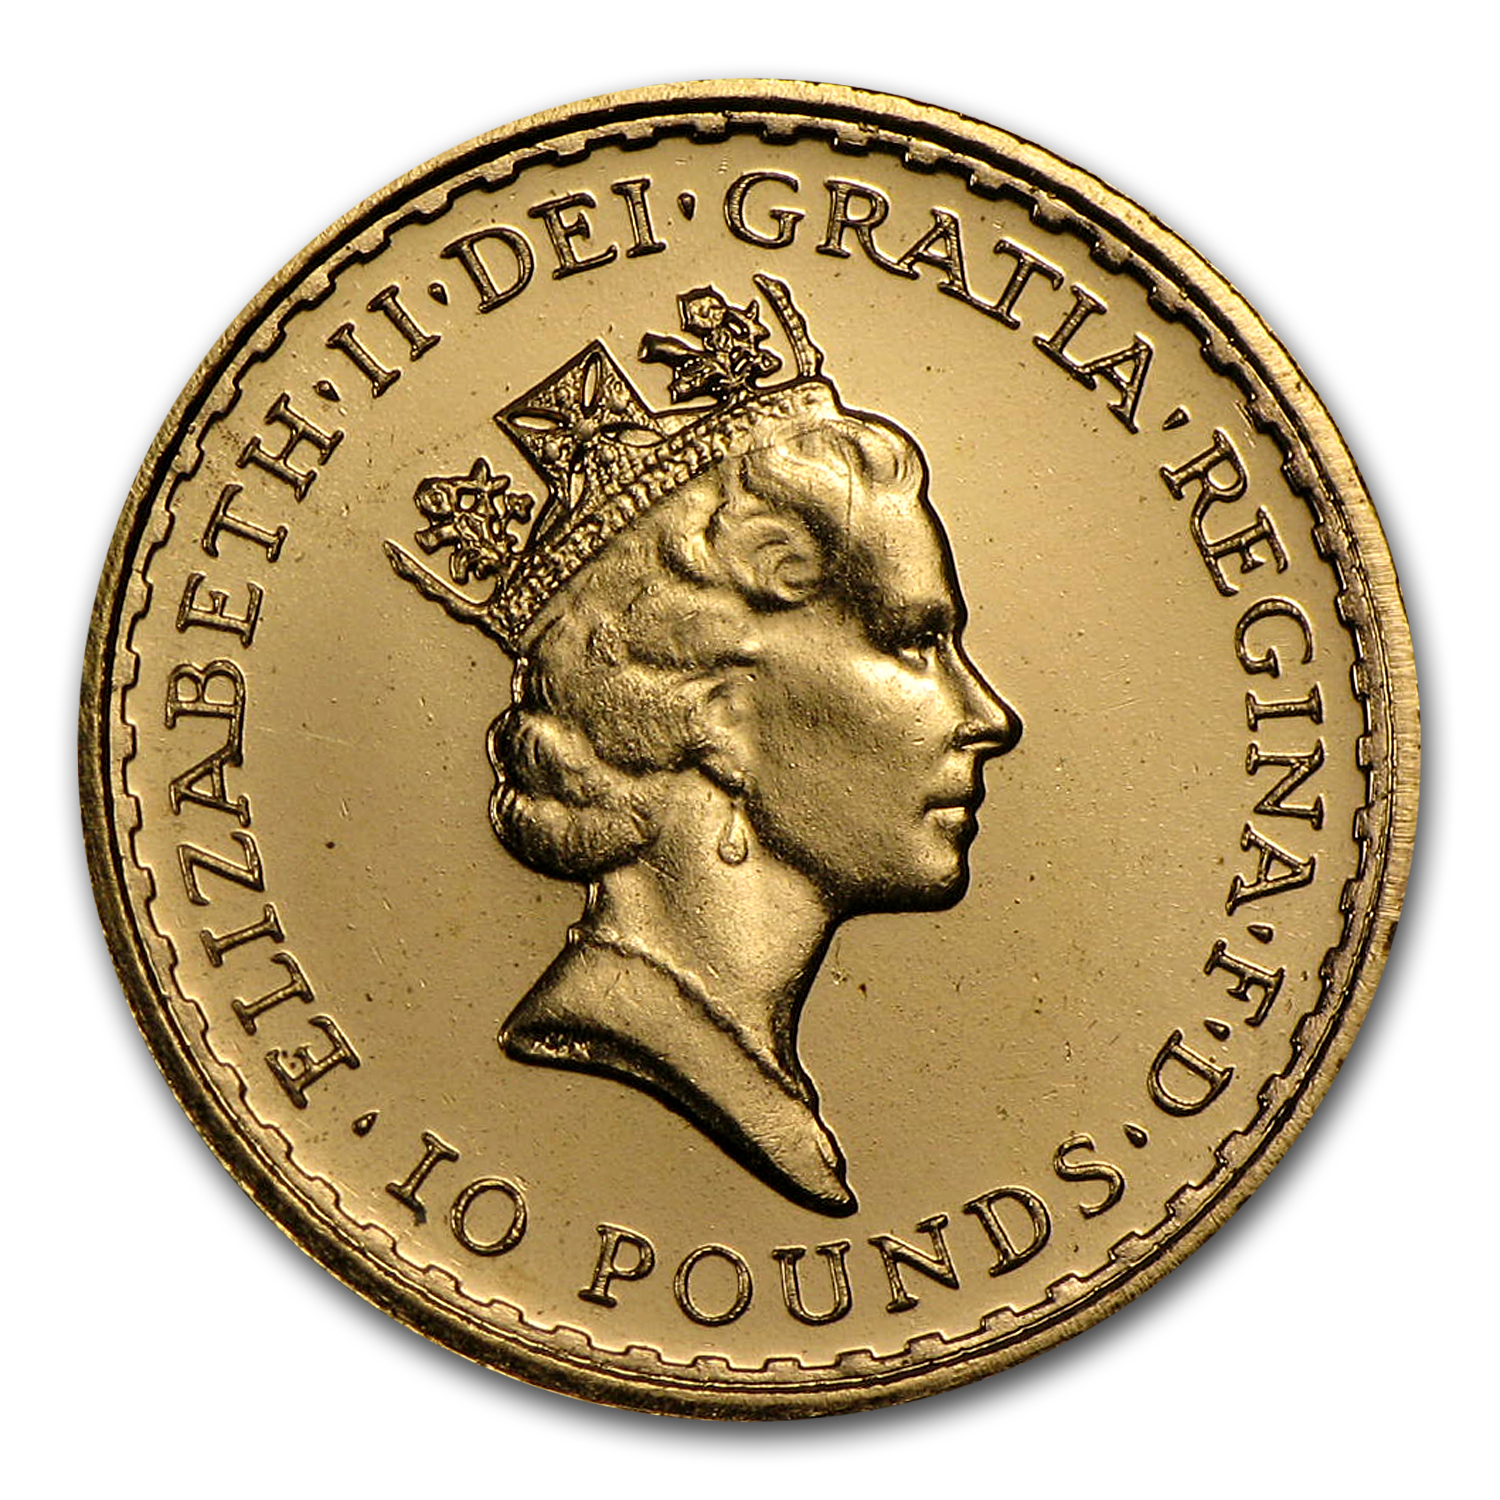 1987 Great Britain 1/10 oz Proof Gold Britannia